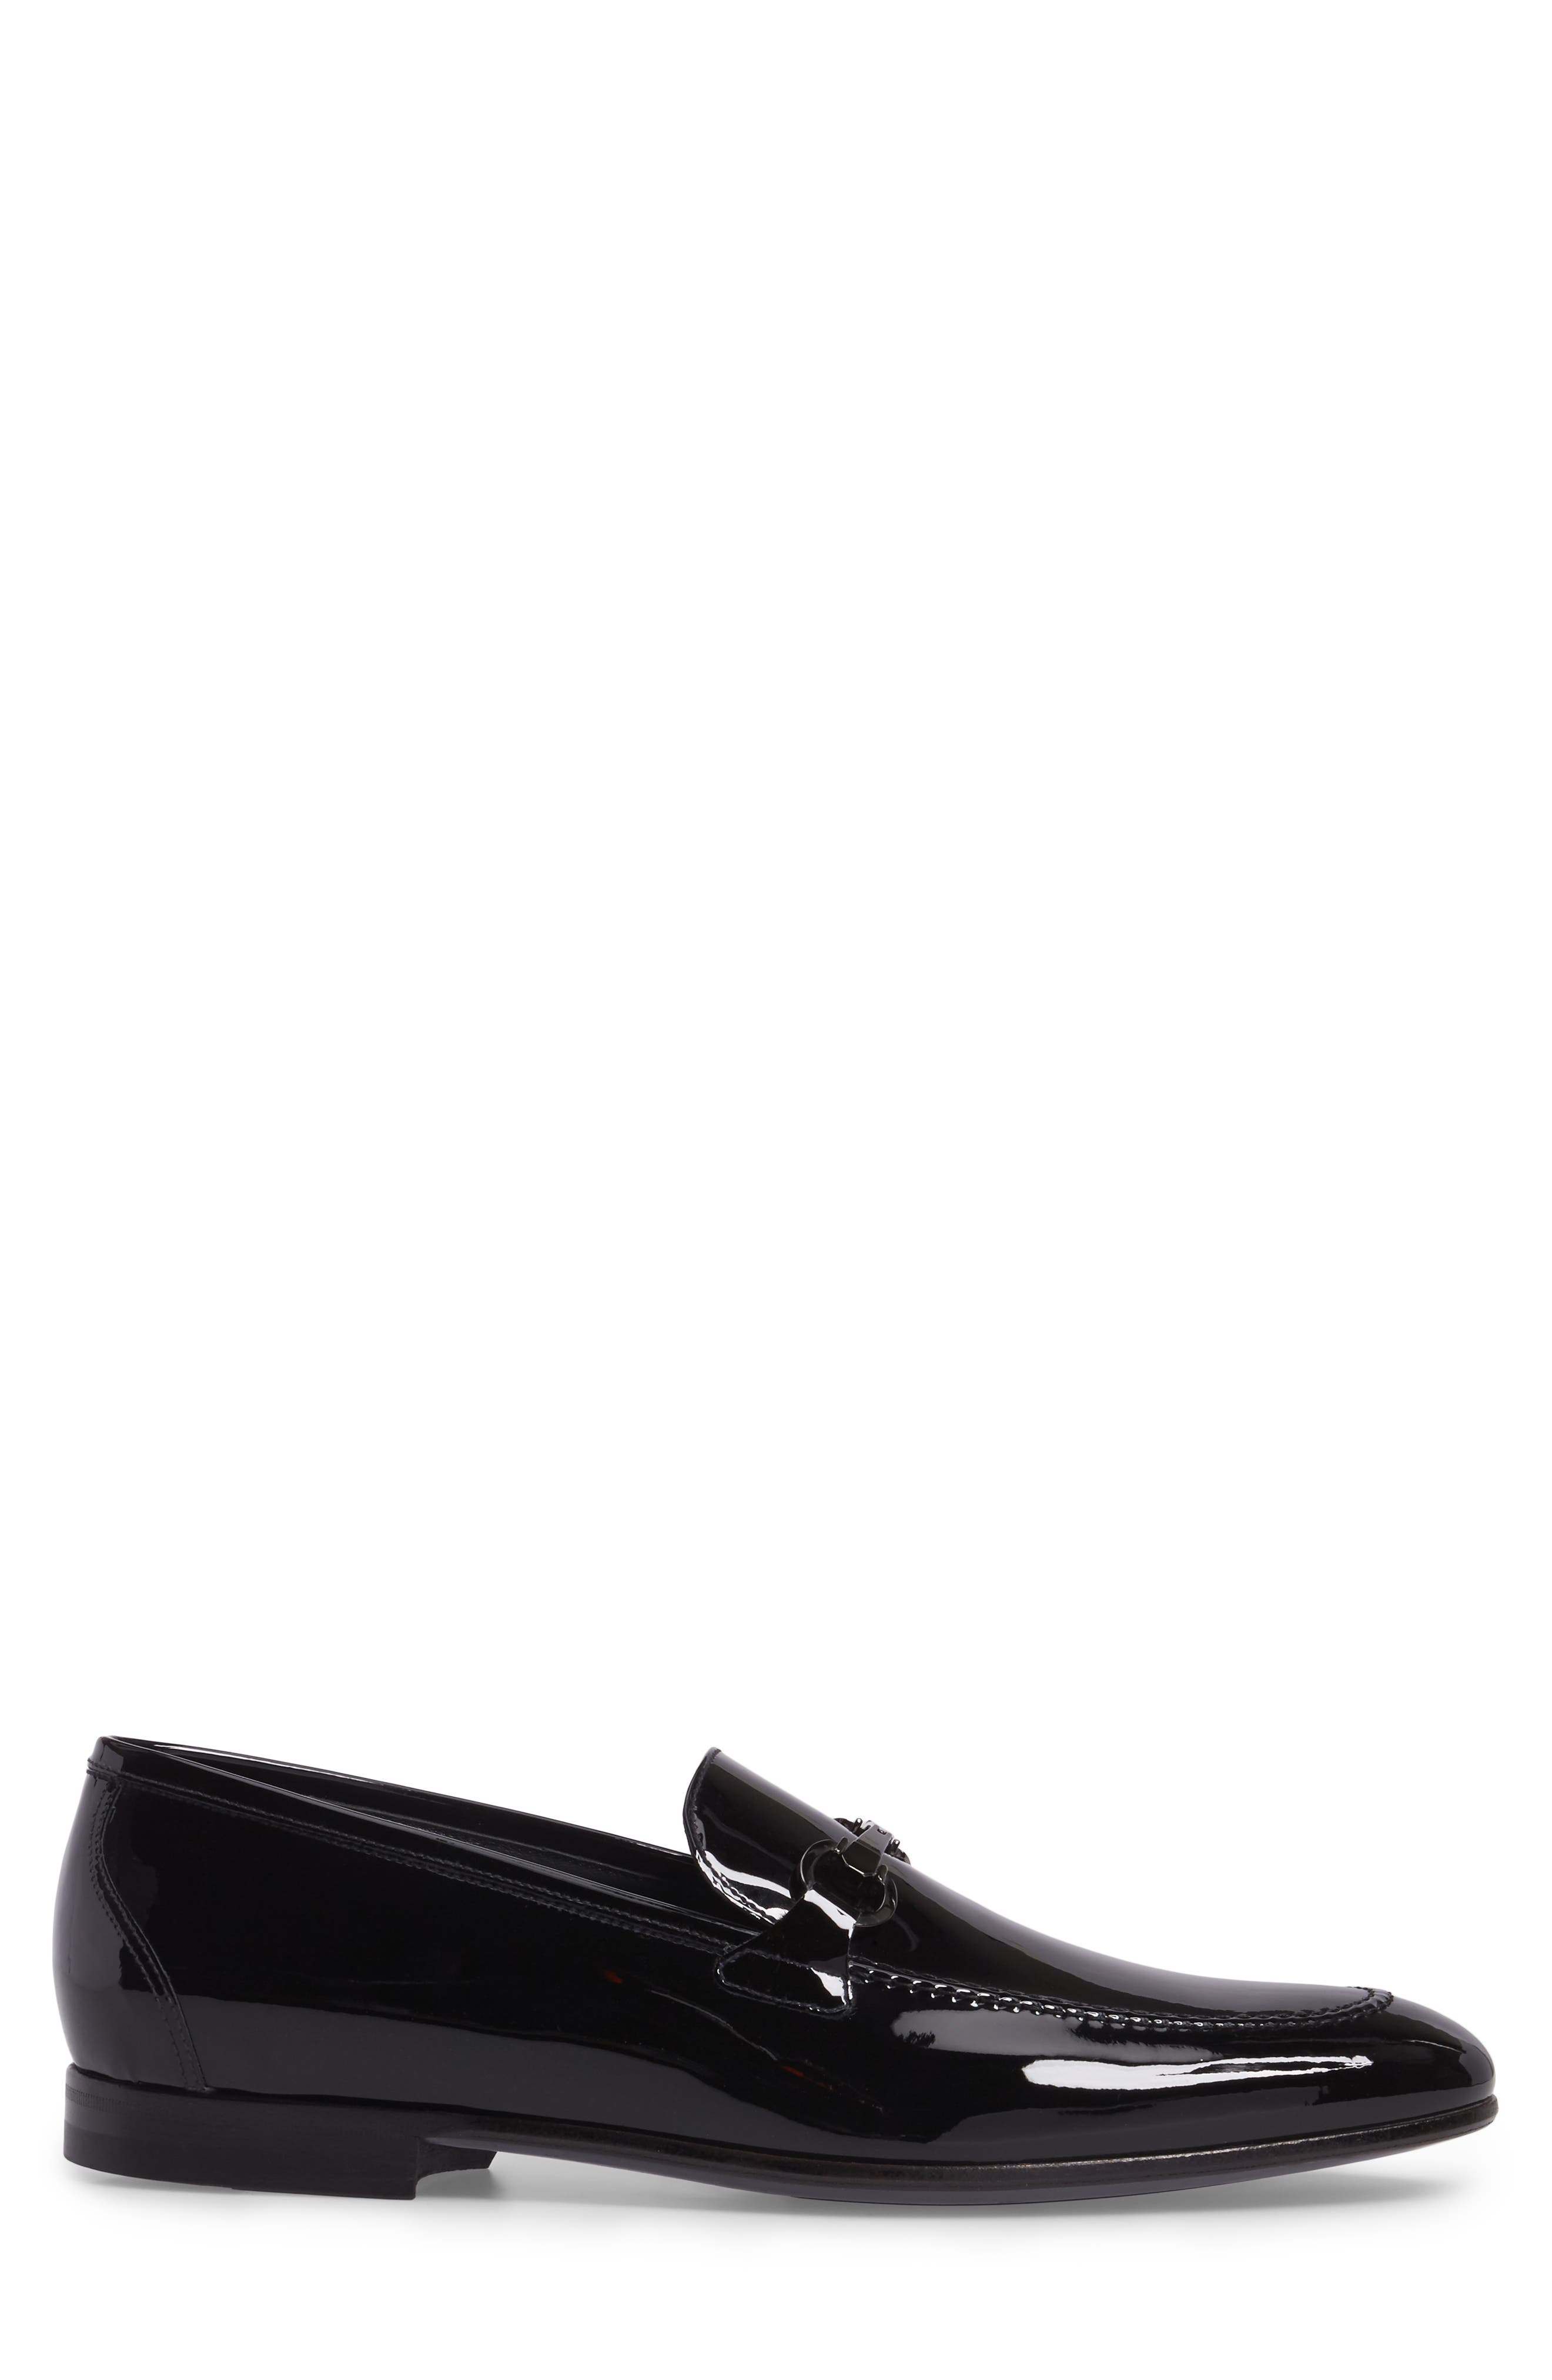 Brianza Bit Loafer,                             Alternate thumbnail 5, color,                             Black Patent Leather